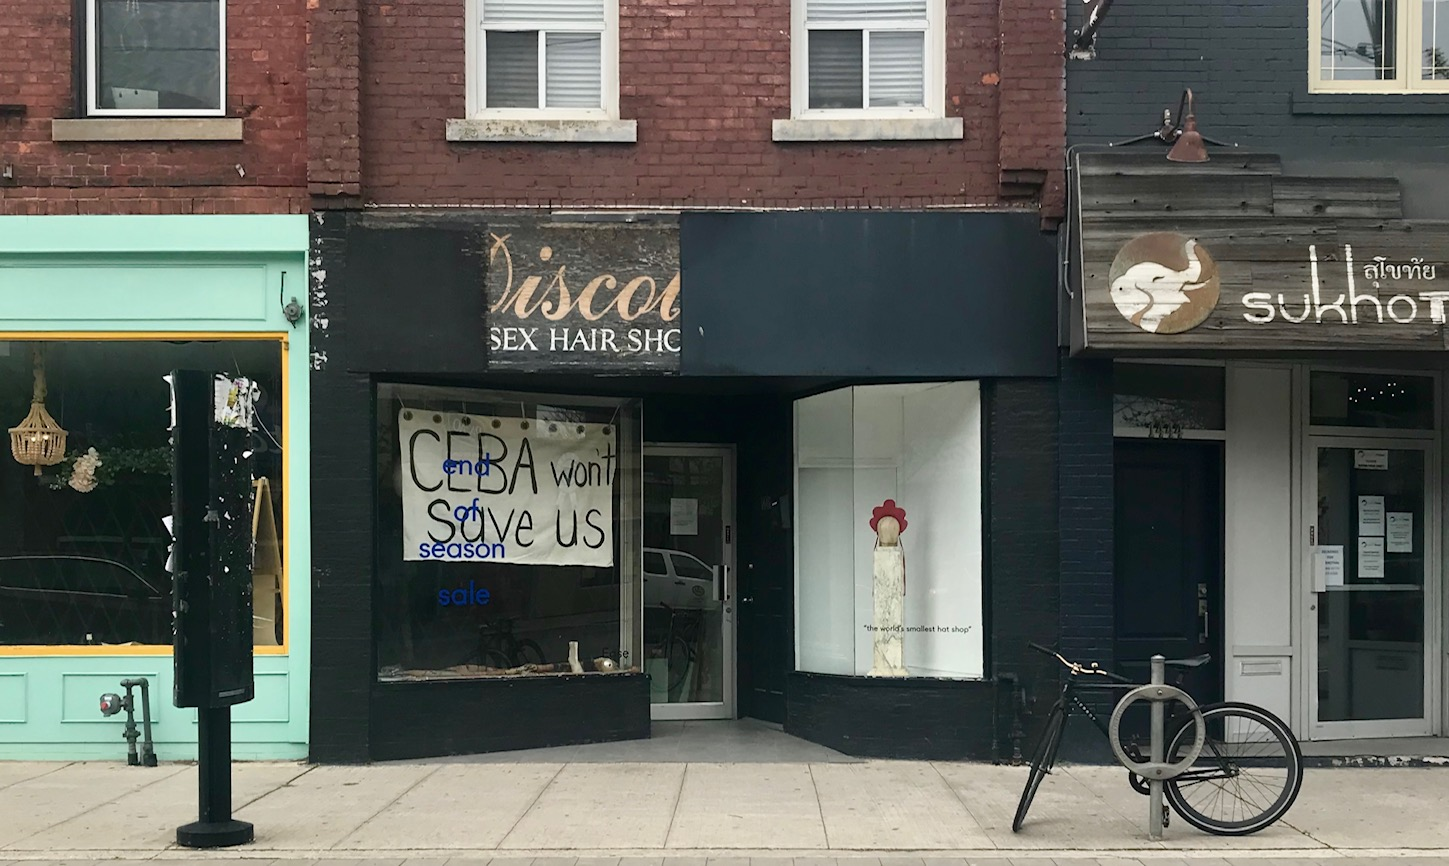 CEBA-wont-save-us-Toronto-business.jpg